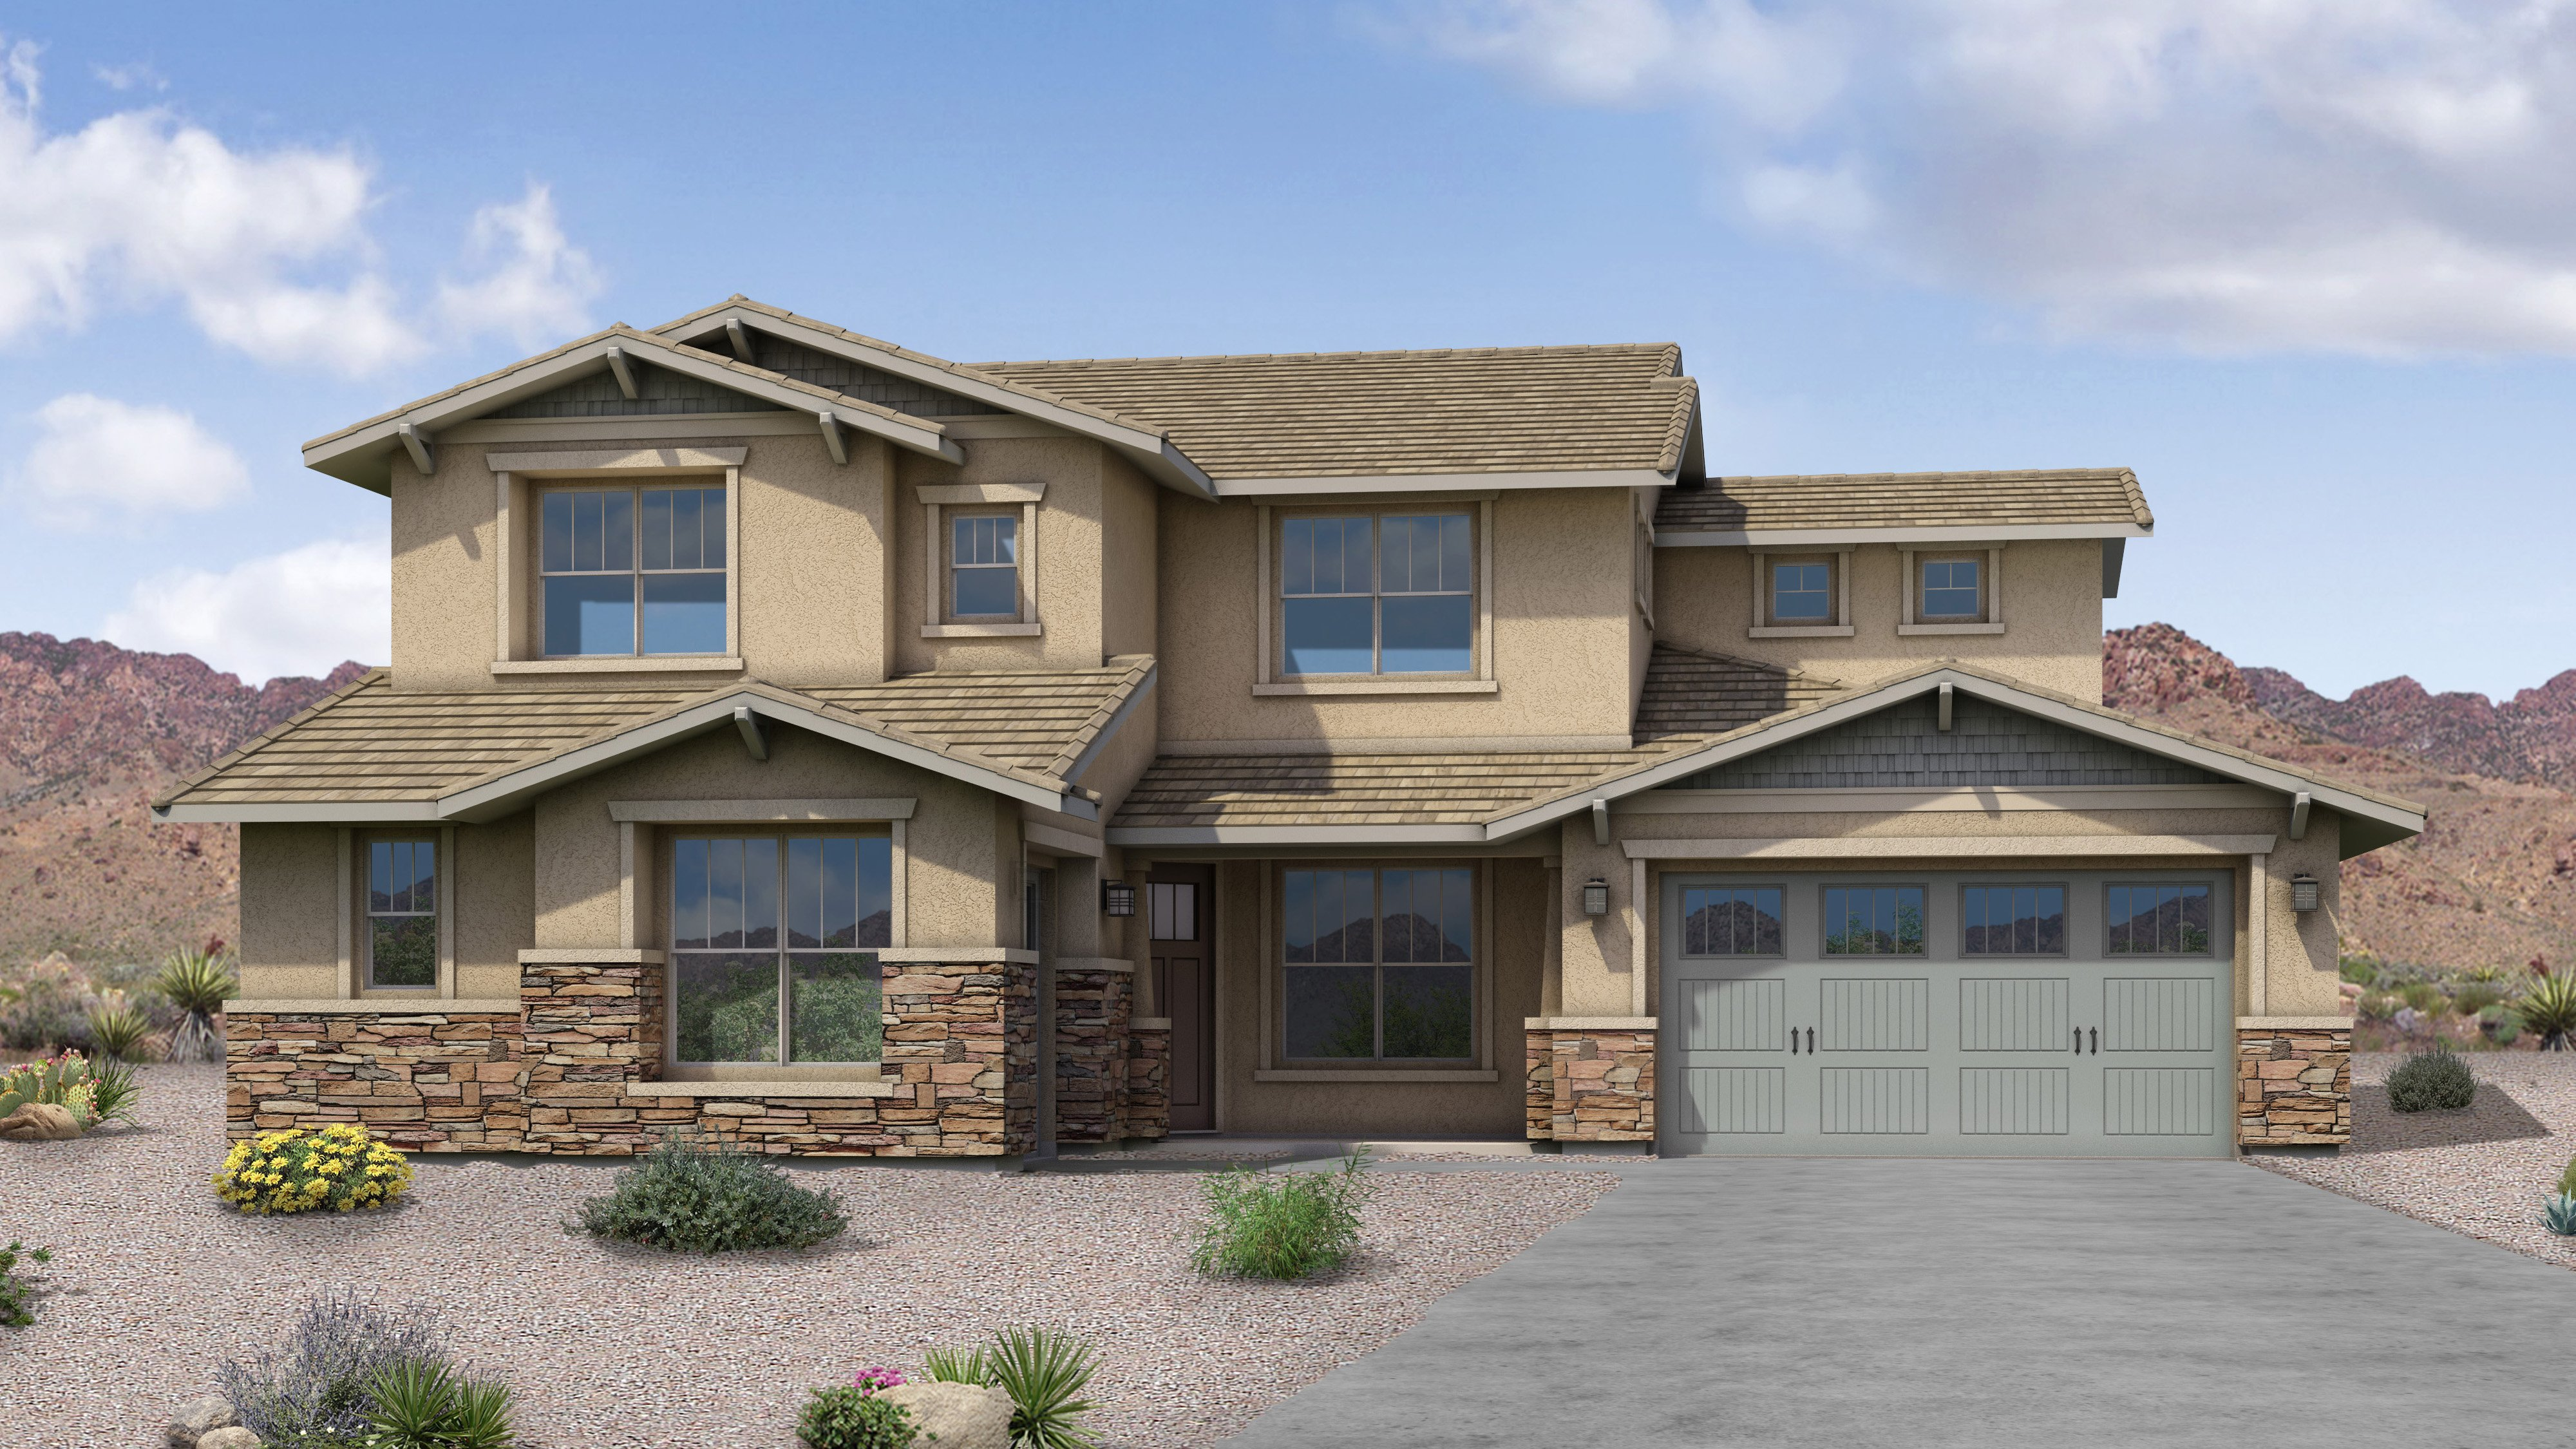 Featured builder meritage homes verrado for Verrado home builders